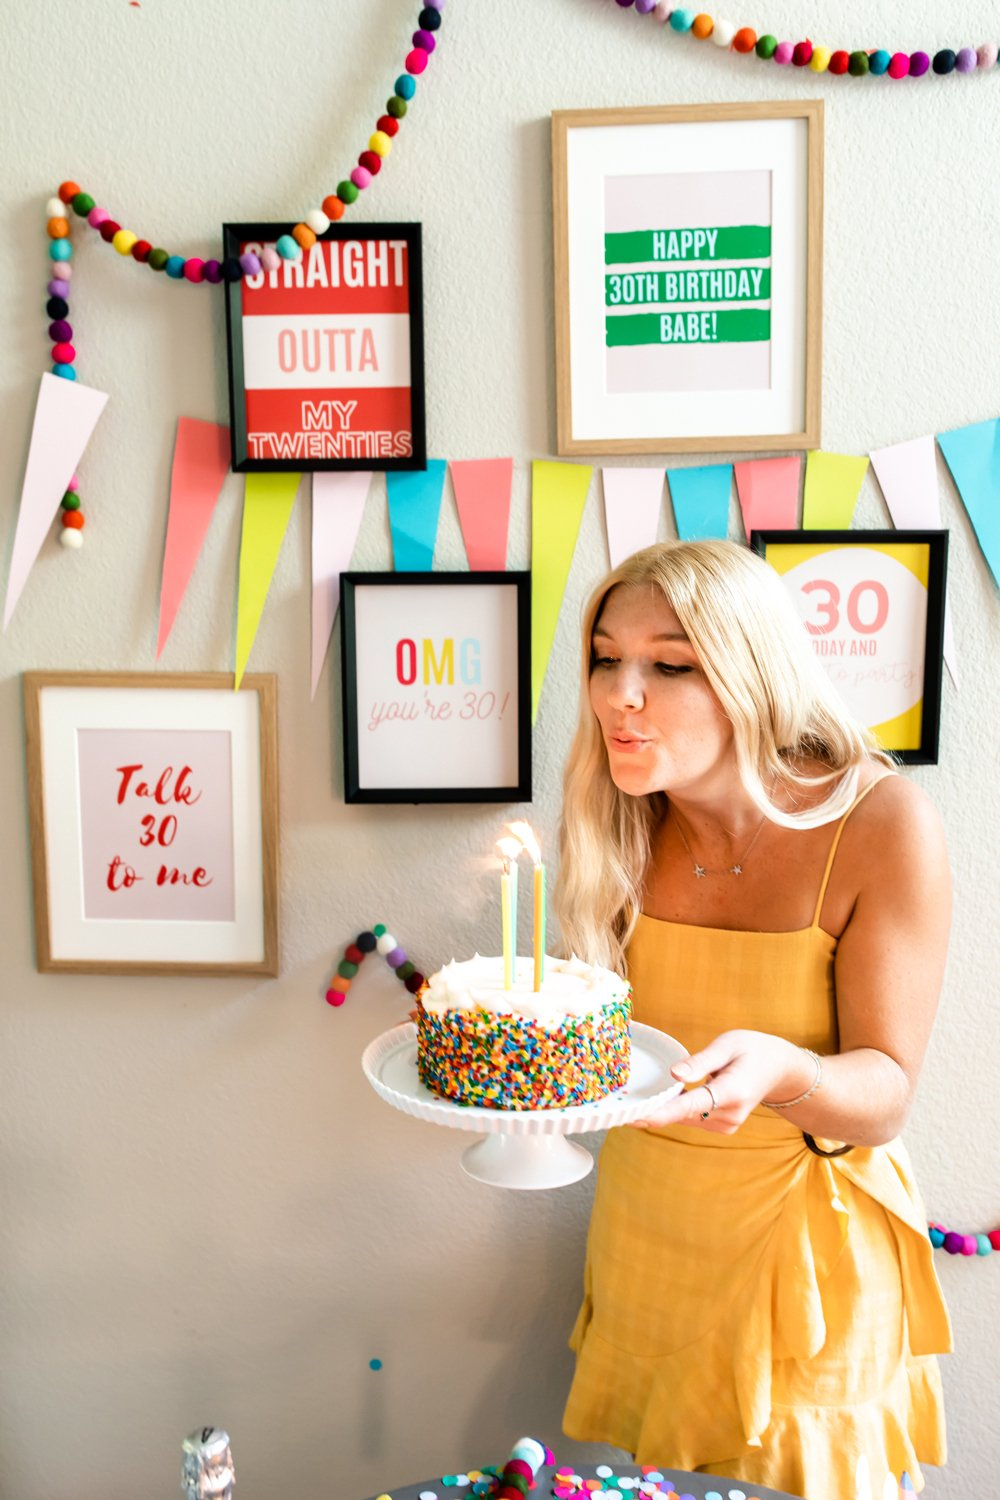 30th birthday party decorations & ideas quotes poster prints